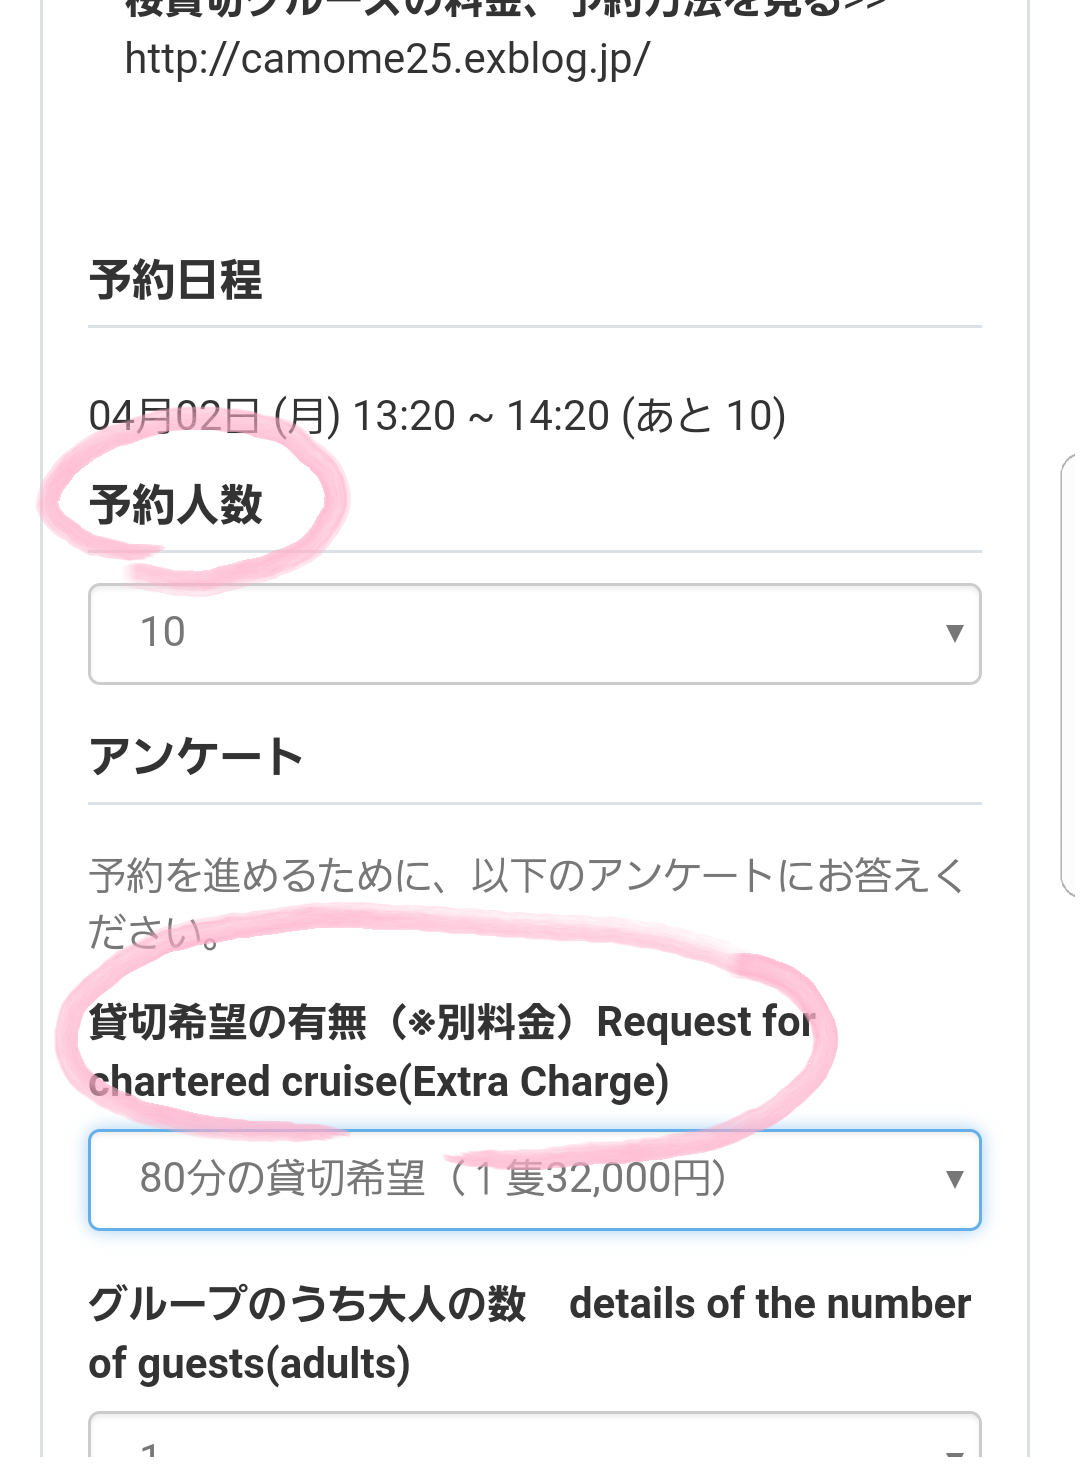 桜貸切クルーズの申込方法 How to book the chartered SAKURA_a0137142_11532661.png